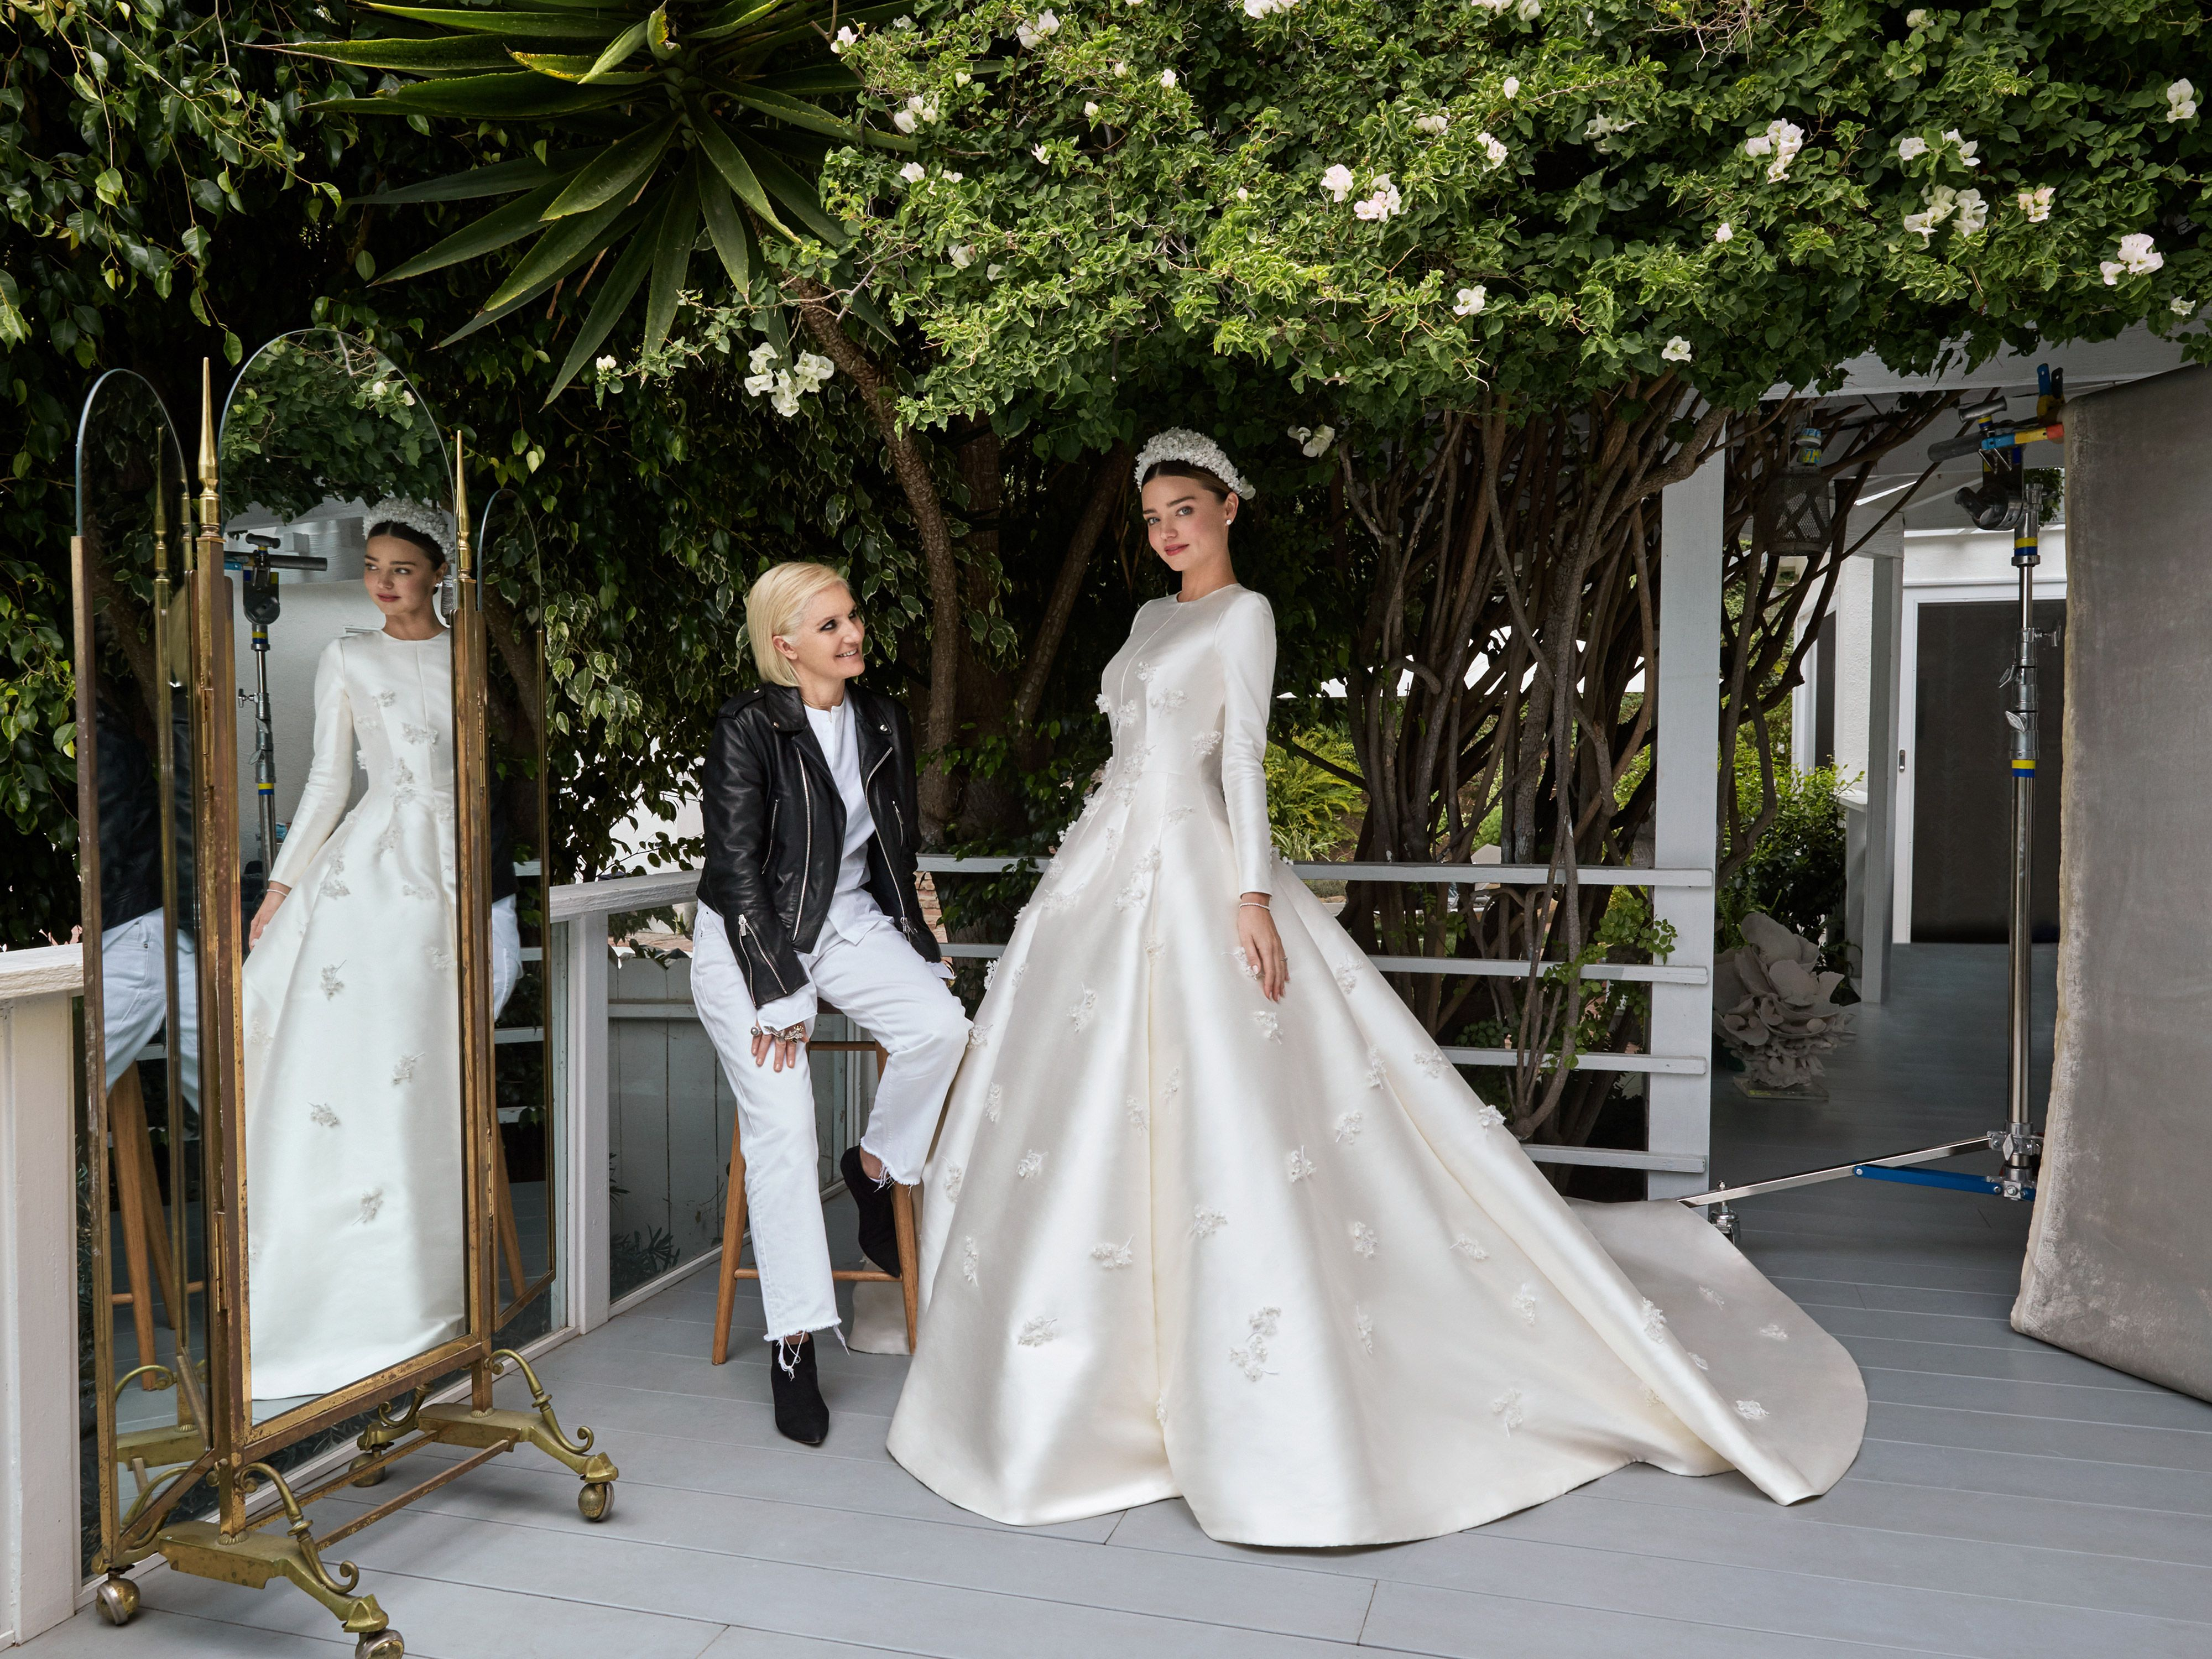 Miranda Kerr Wedding Dress Pictures Got Married Wearing Dior Couture